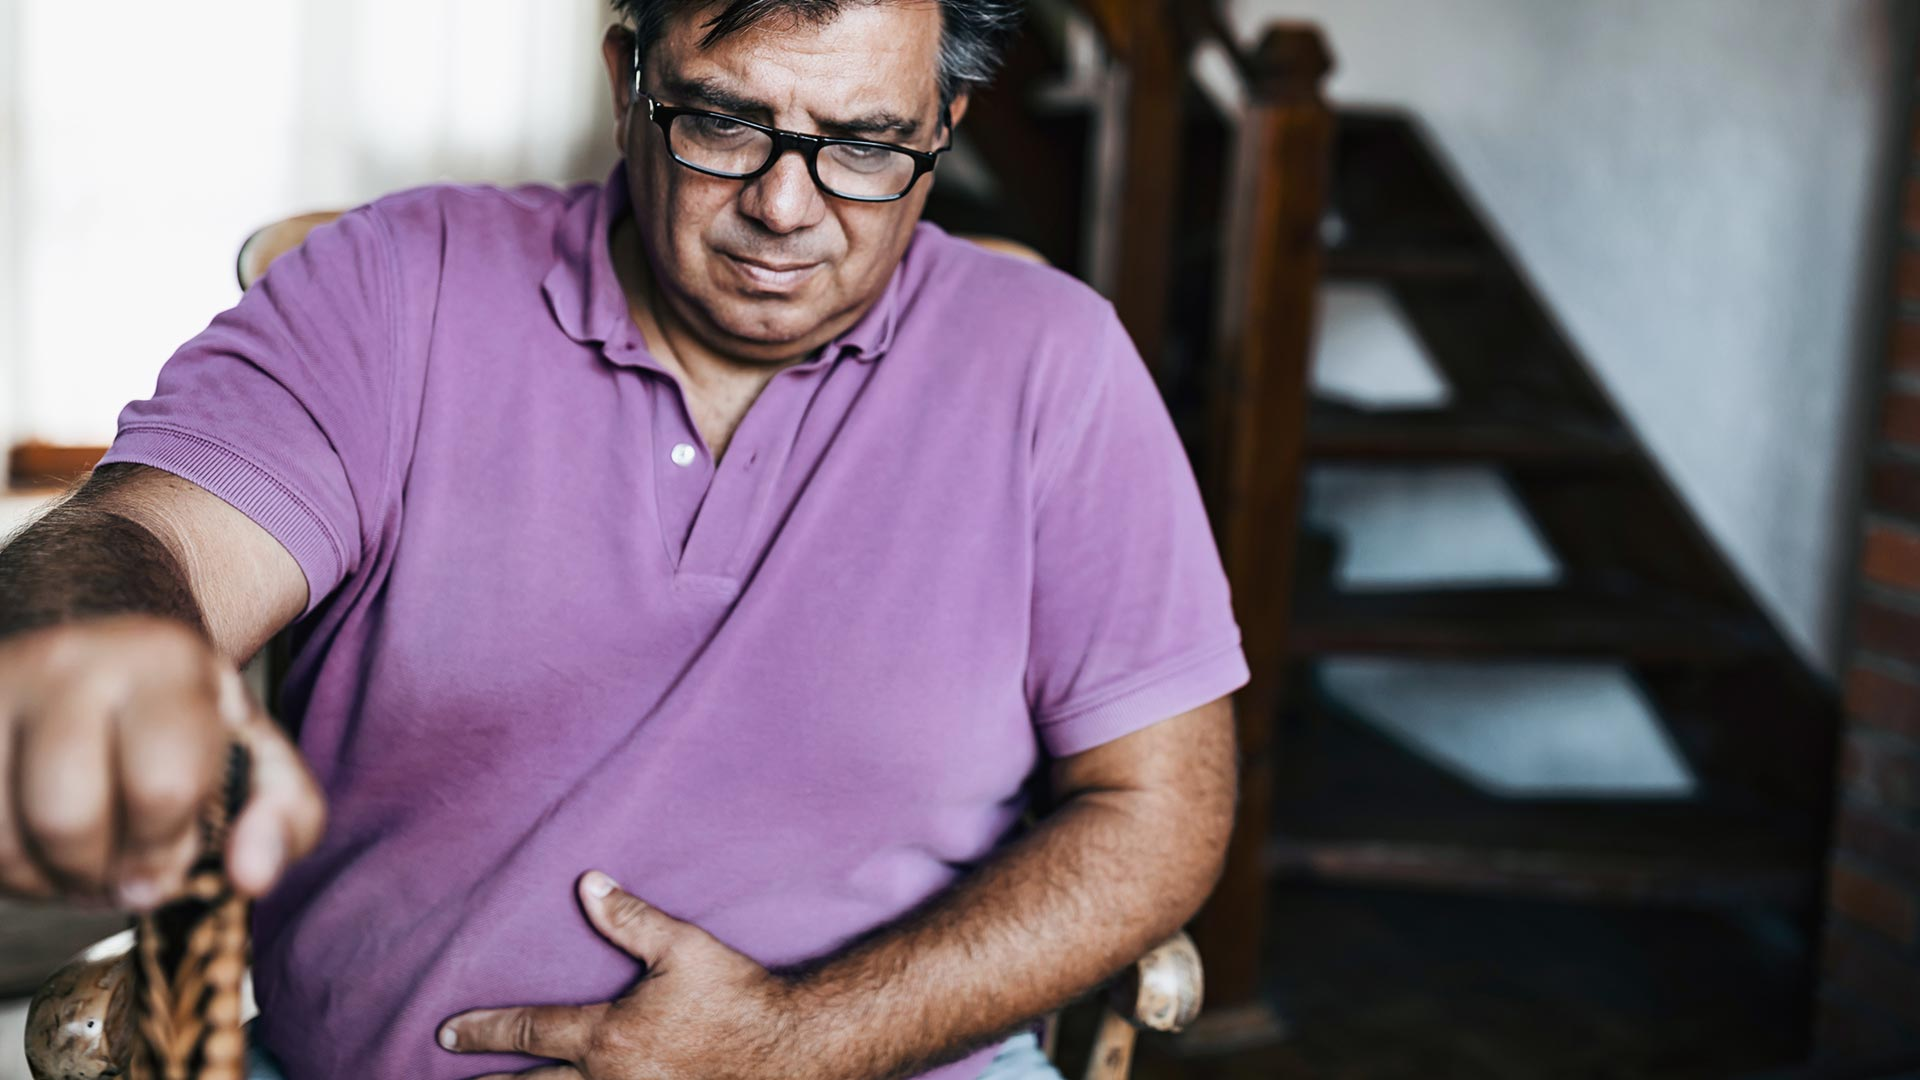 Hernias: The Truth Behind the Bulge